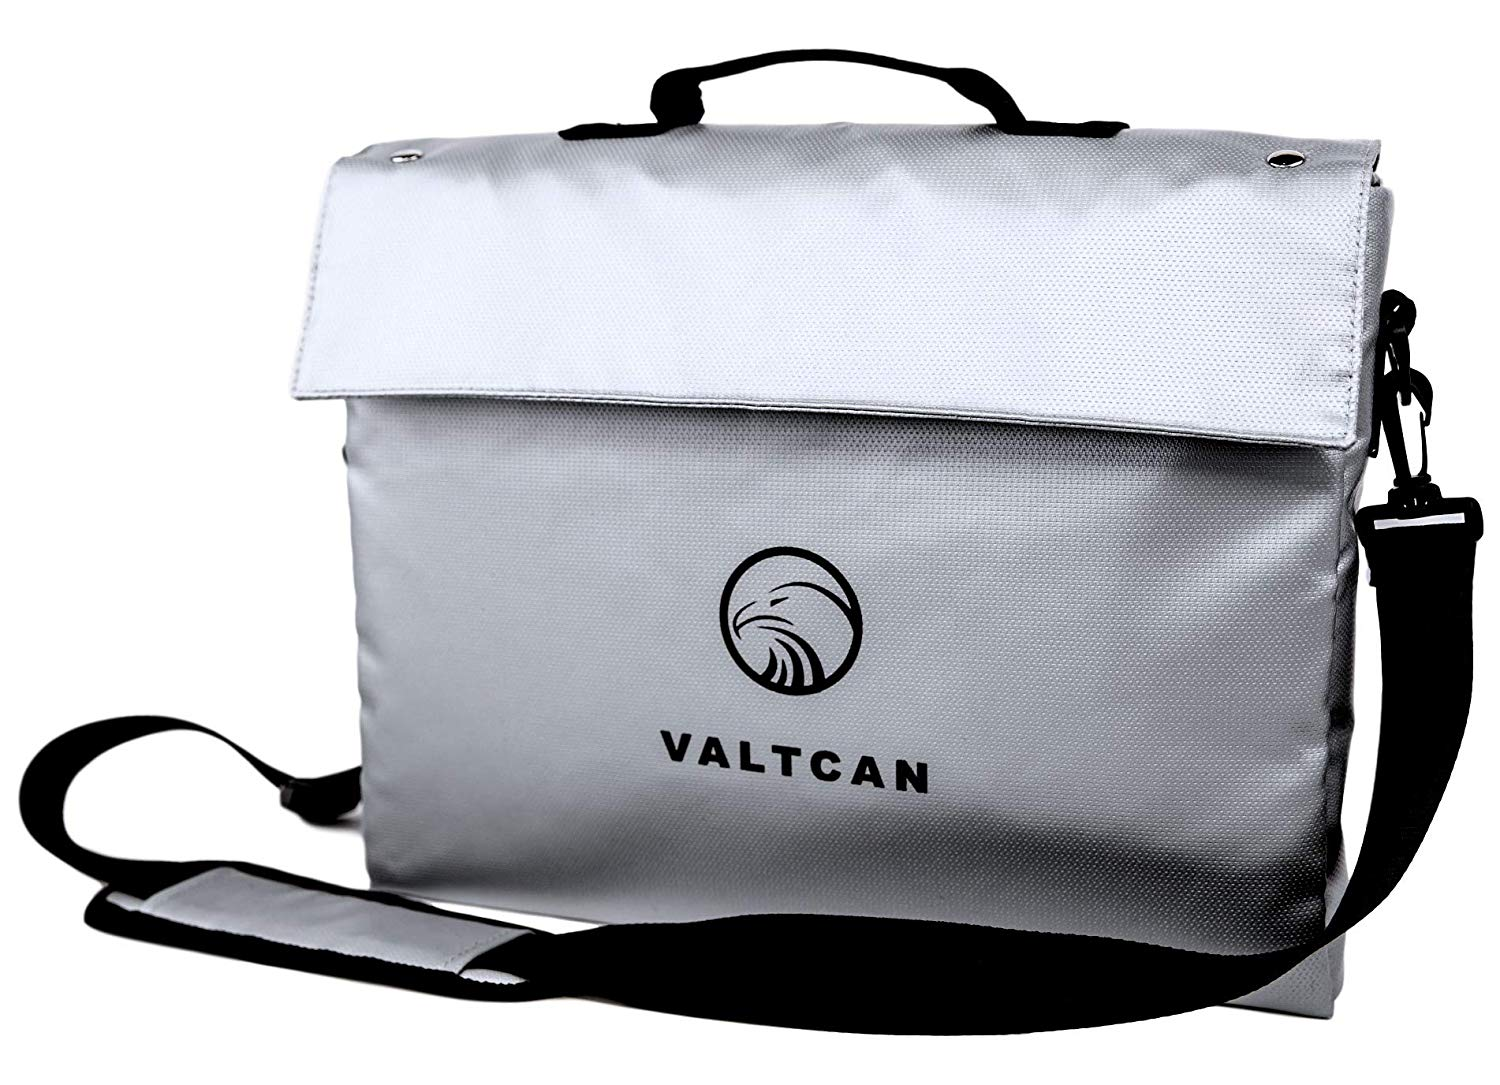 Valtcan Fireproof Document Money Bag 15 x 11 x 3.5 In